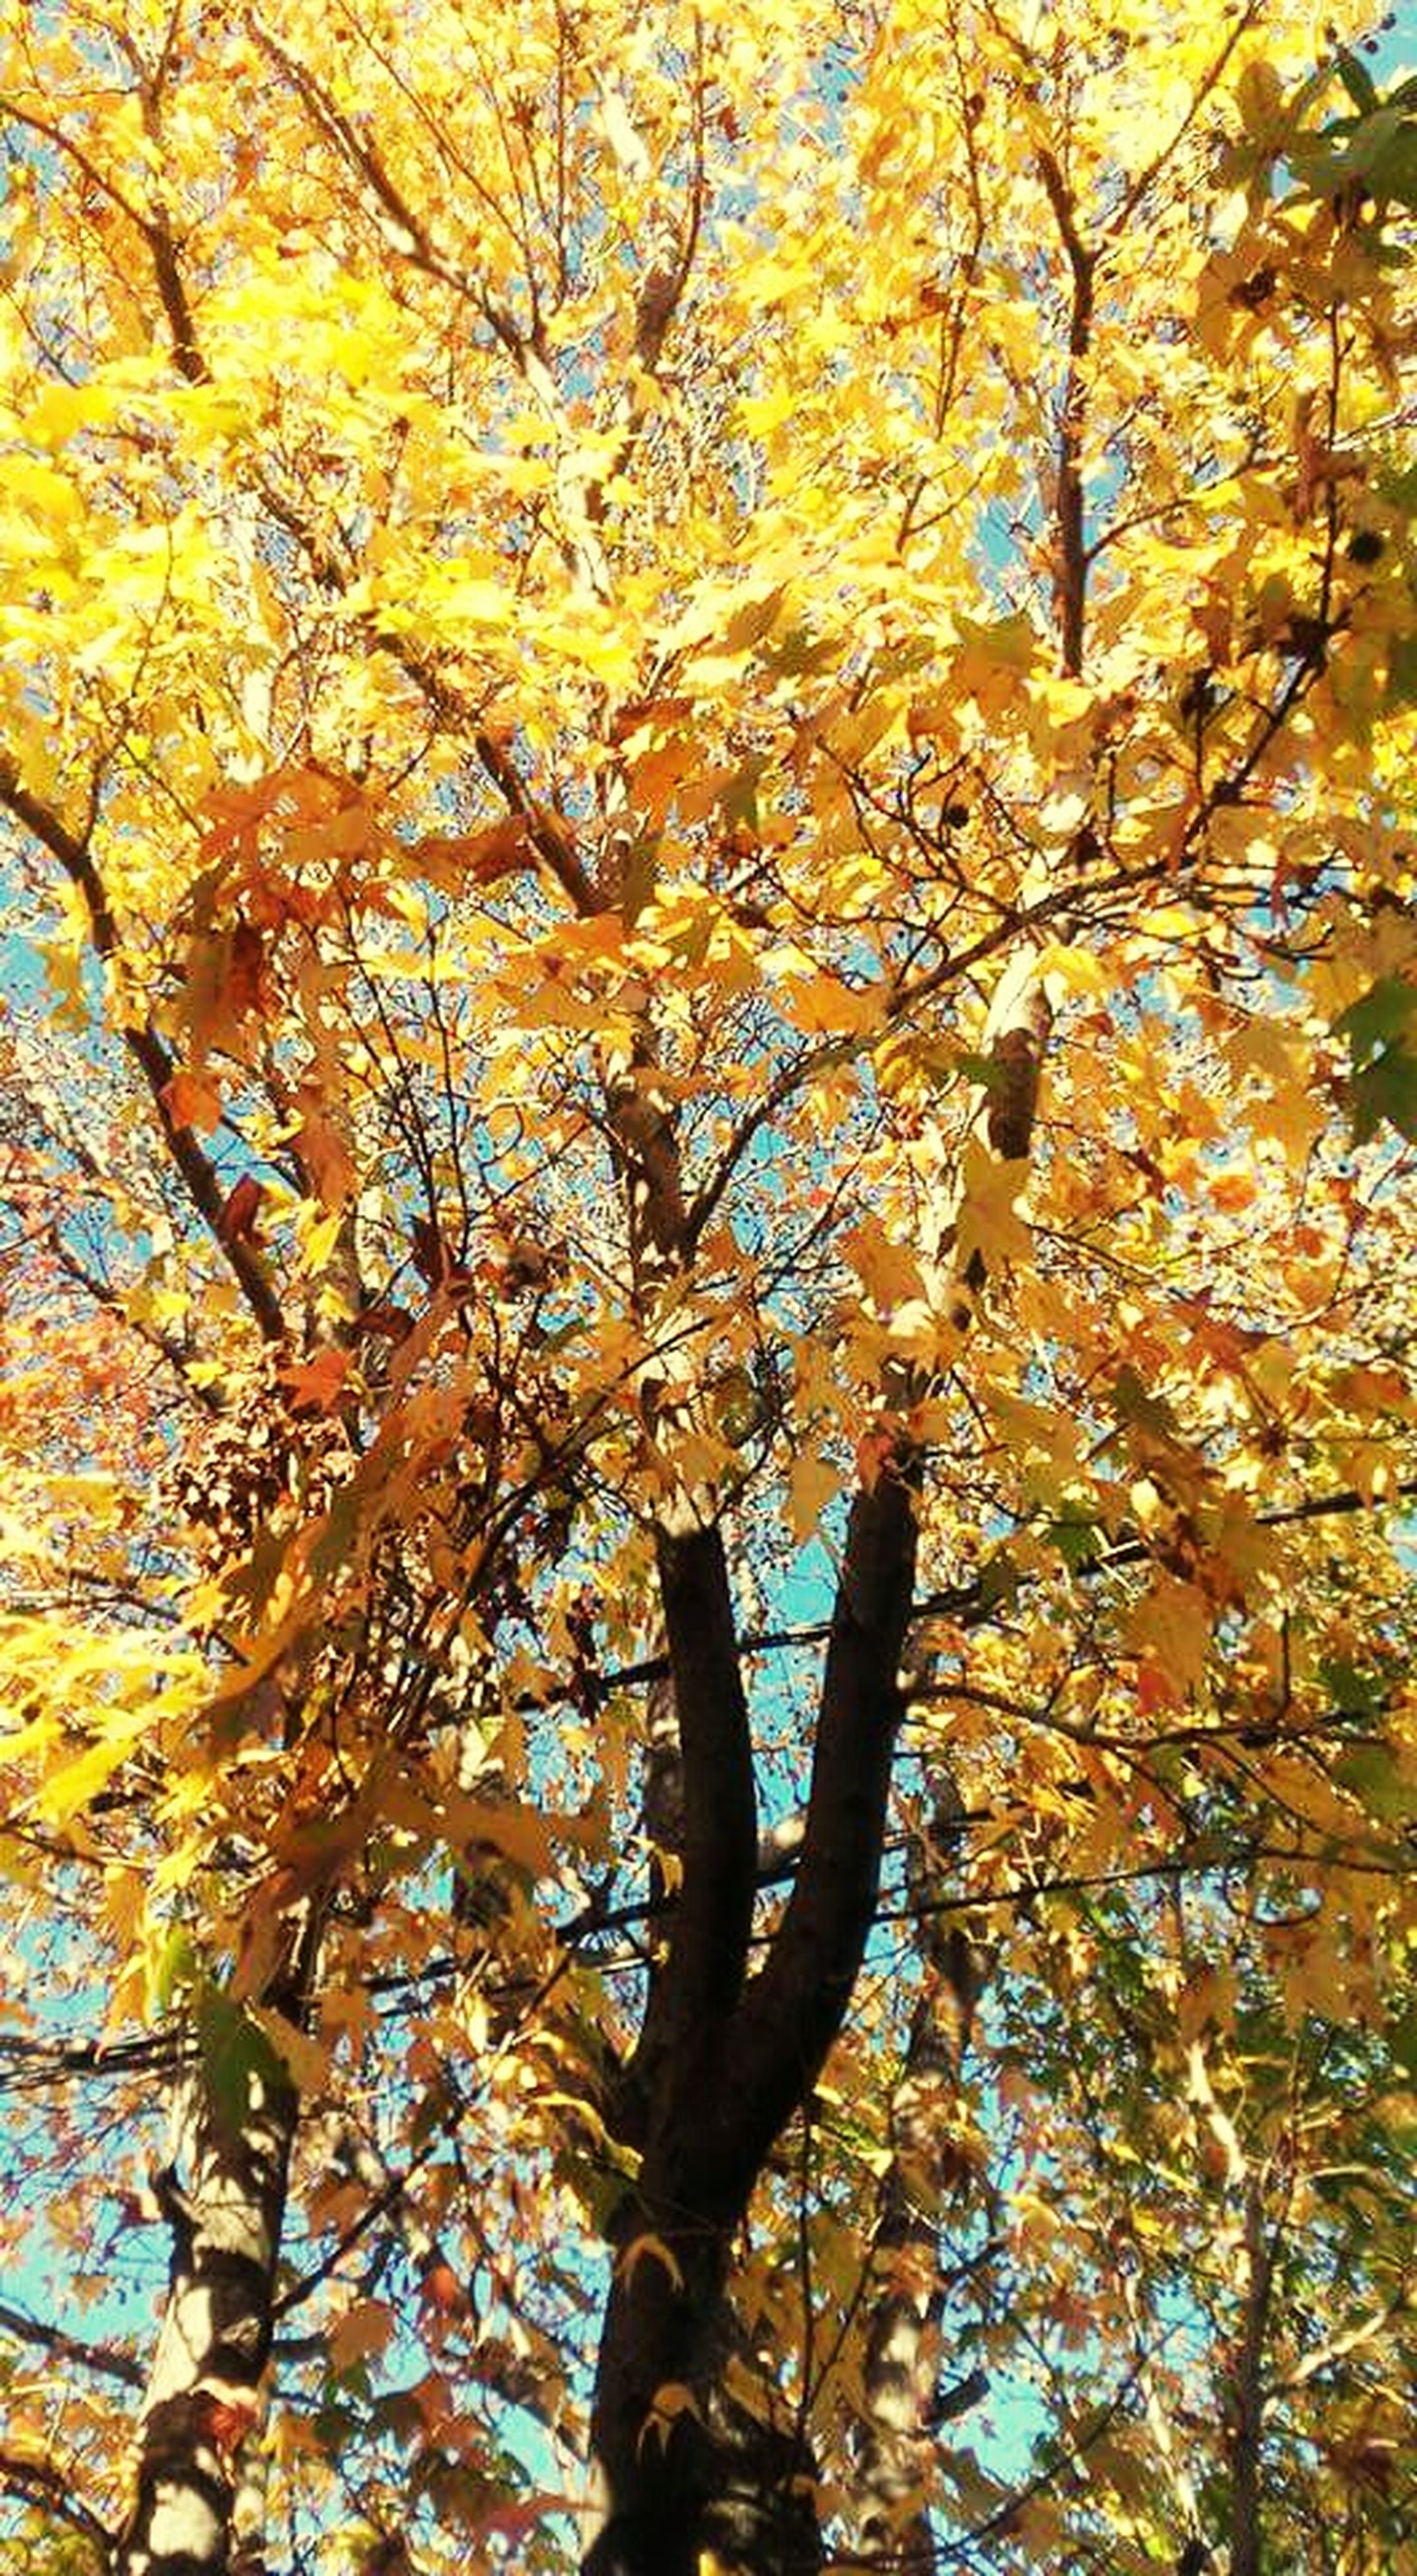 autumn, tree, nature, low angle view, change, leaf, branch, beauty in nature, yellow, growth, outdoors, no people, day, backgrounds, close-up